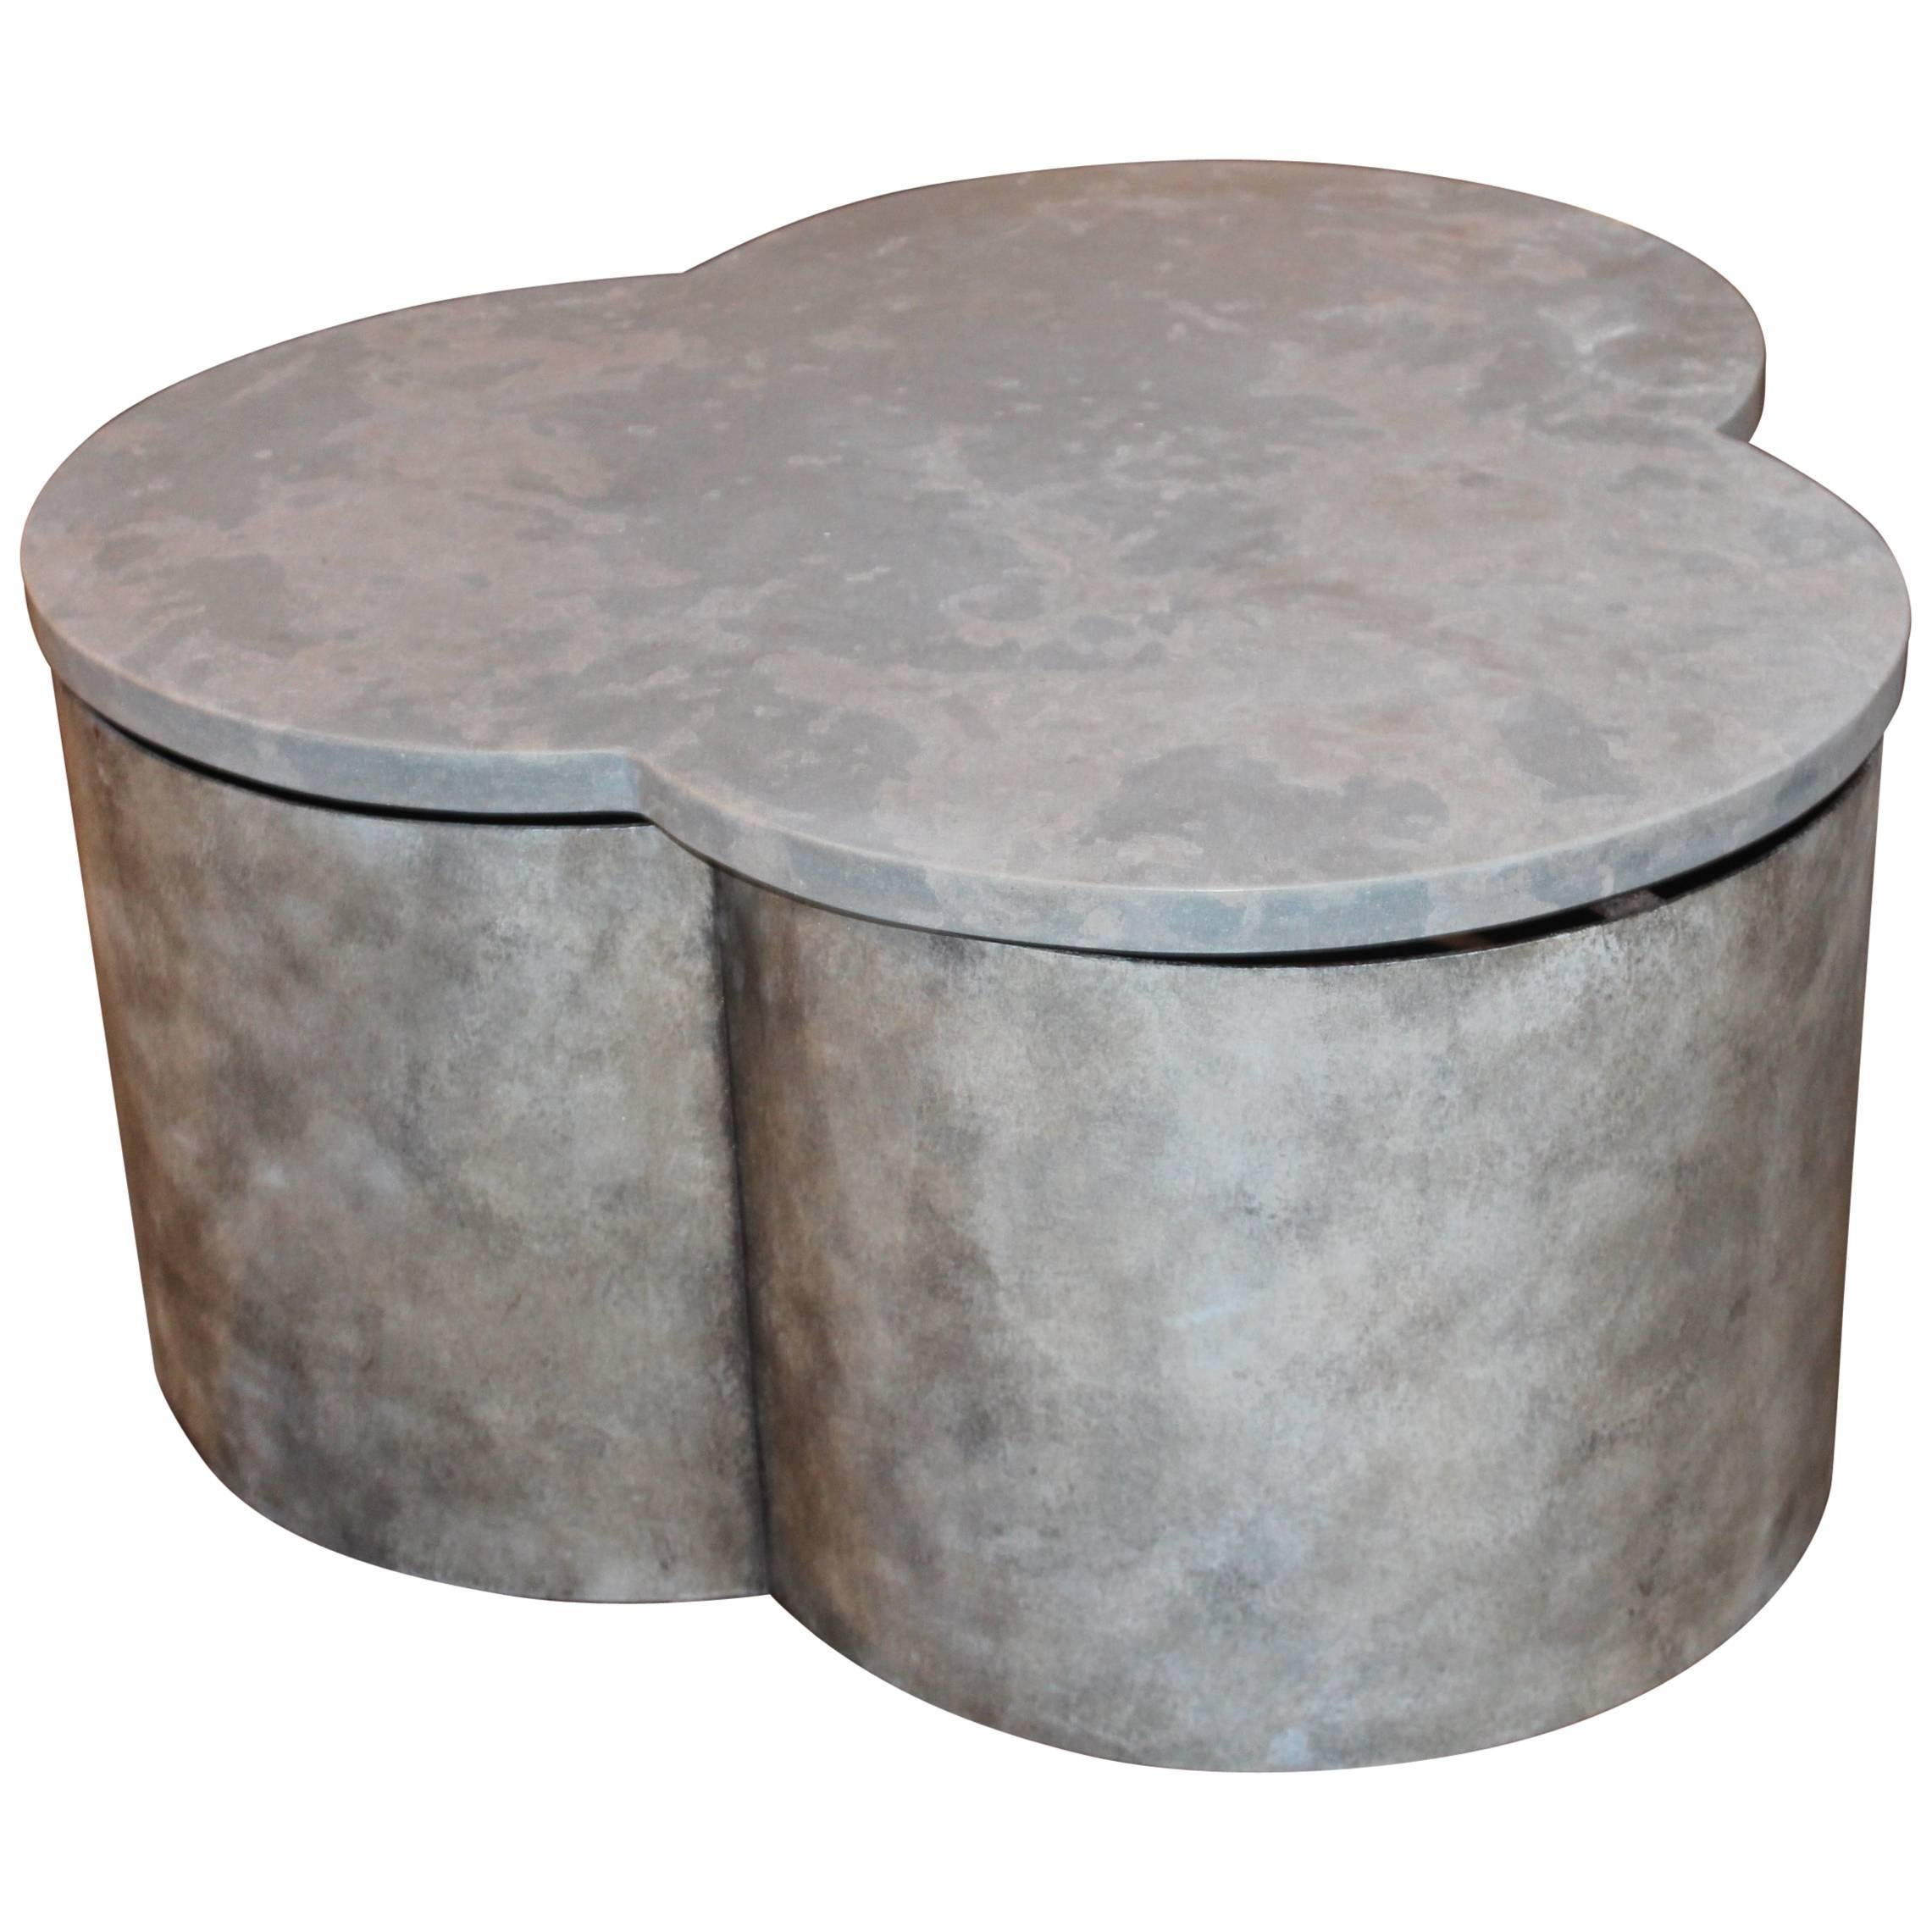 Transitional Coffee Table with Limestone Top For Sale at 1stdibs